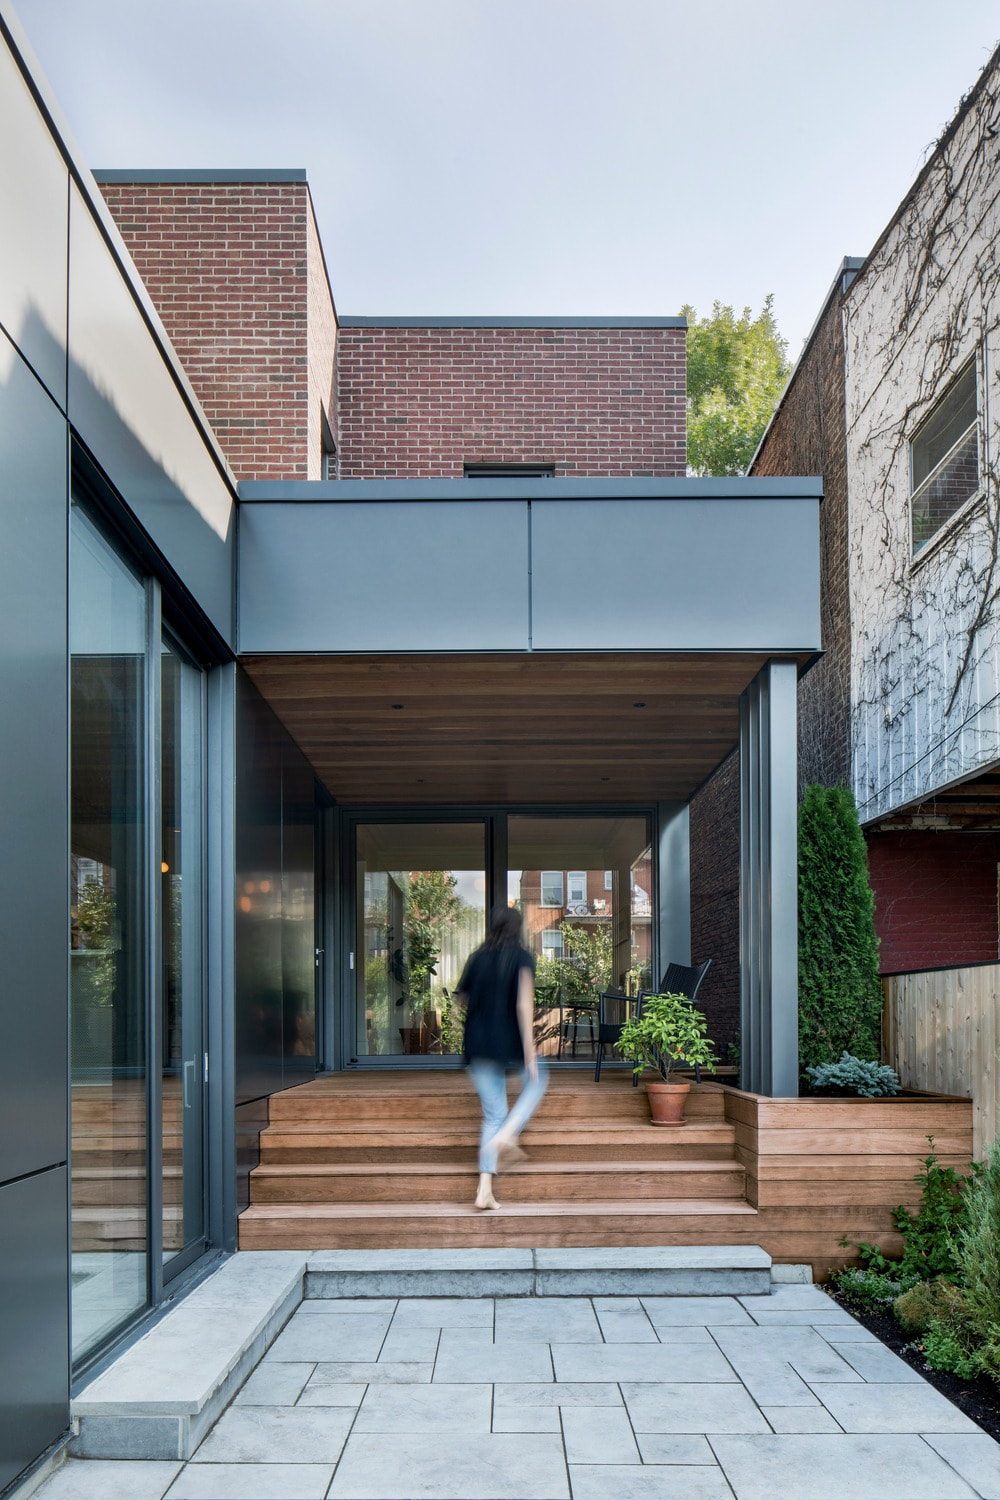 This is another look at the main entrance of the house featuring the wooden deck steps that stand out against the surrounding metal and glass elements of the house exterior.